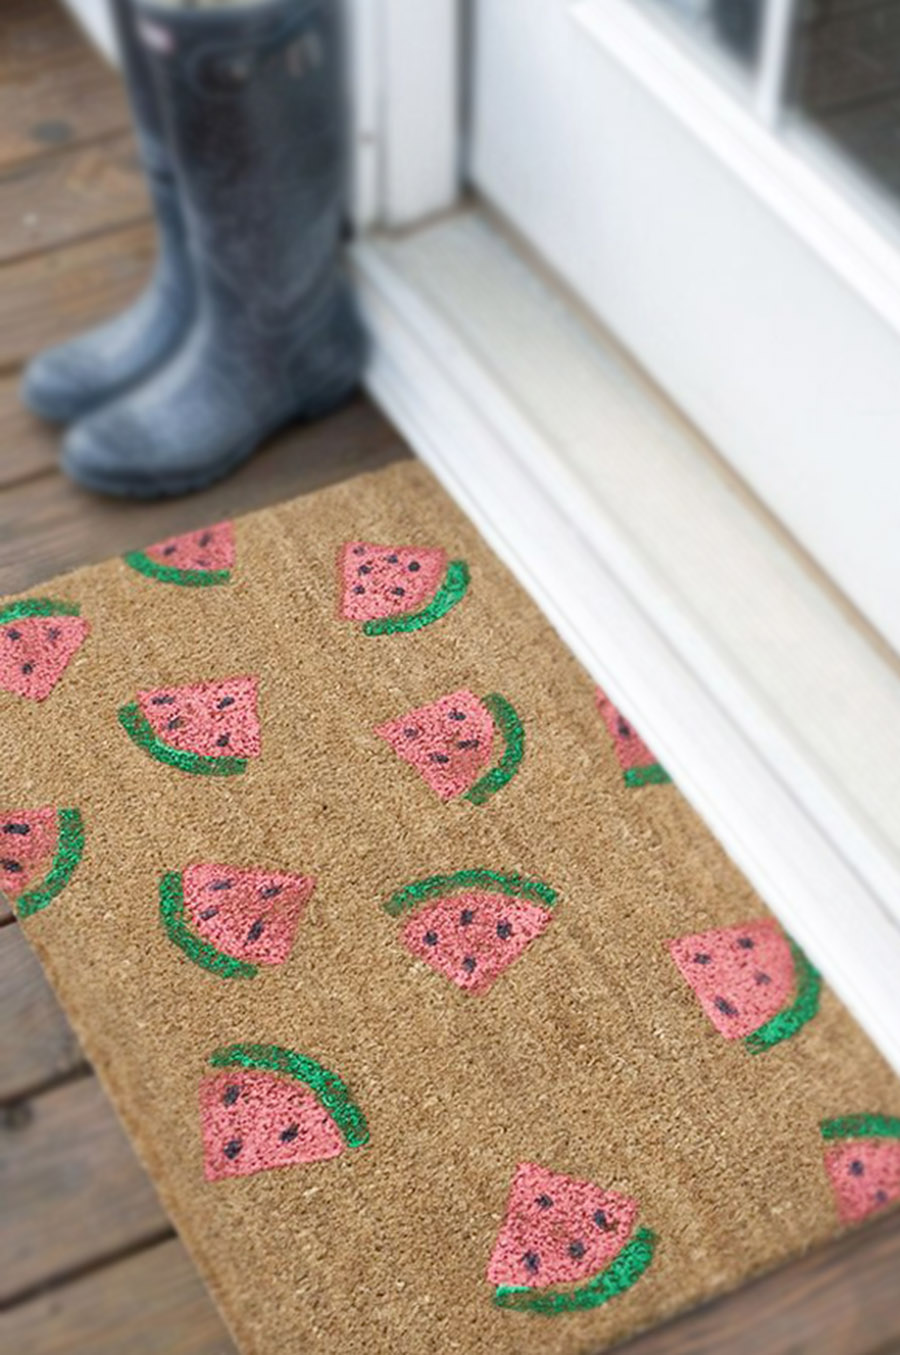 Easy Summer DIY, Watermellon Stamped Doormat, DIY Paint Stamps, Watermellon DIY Projects